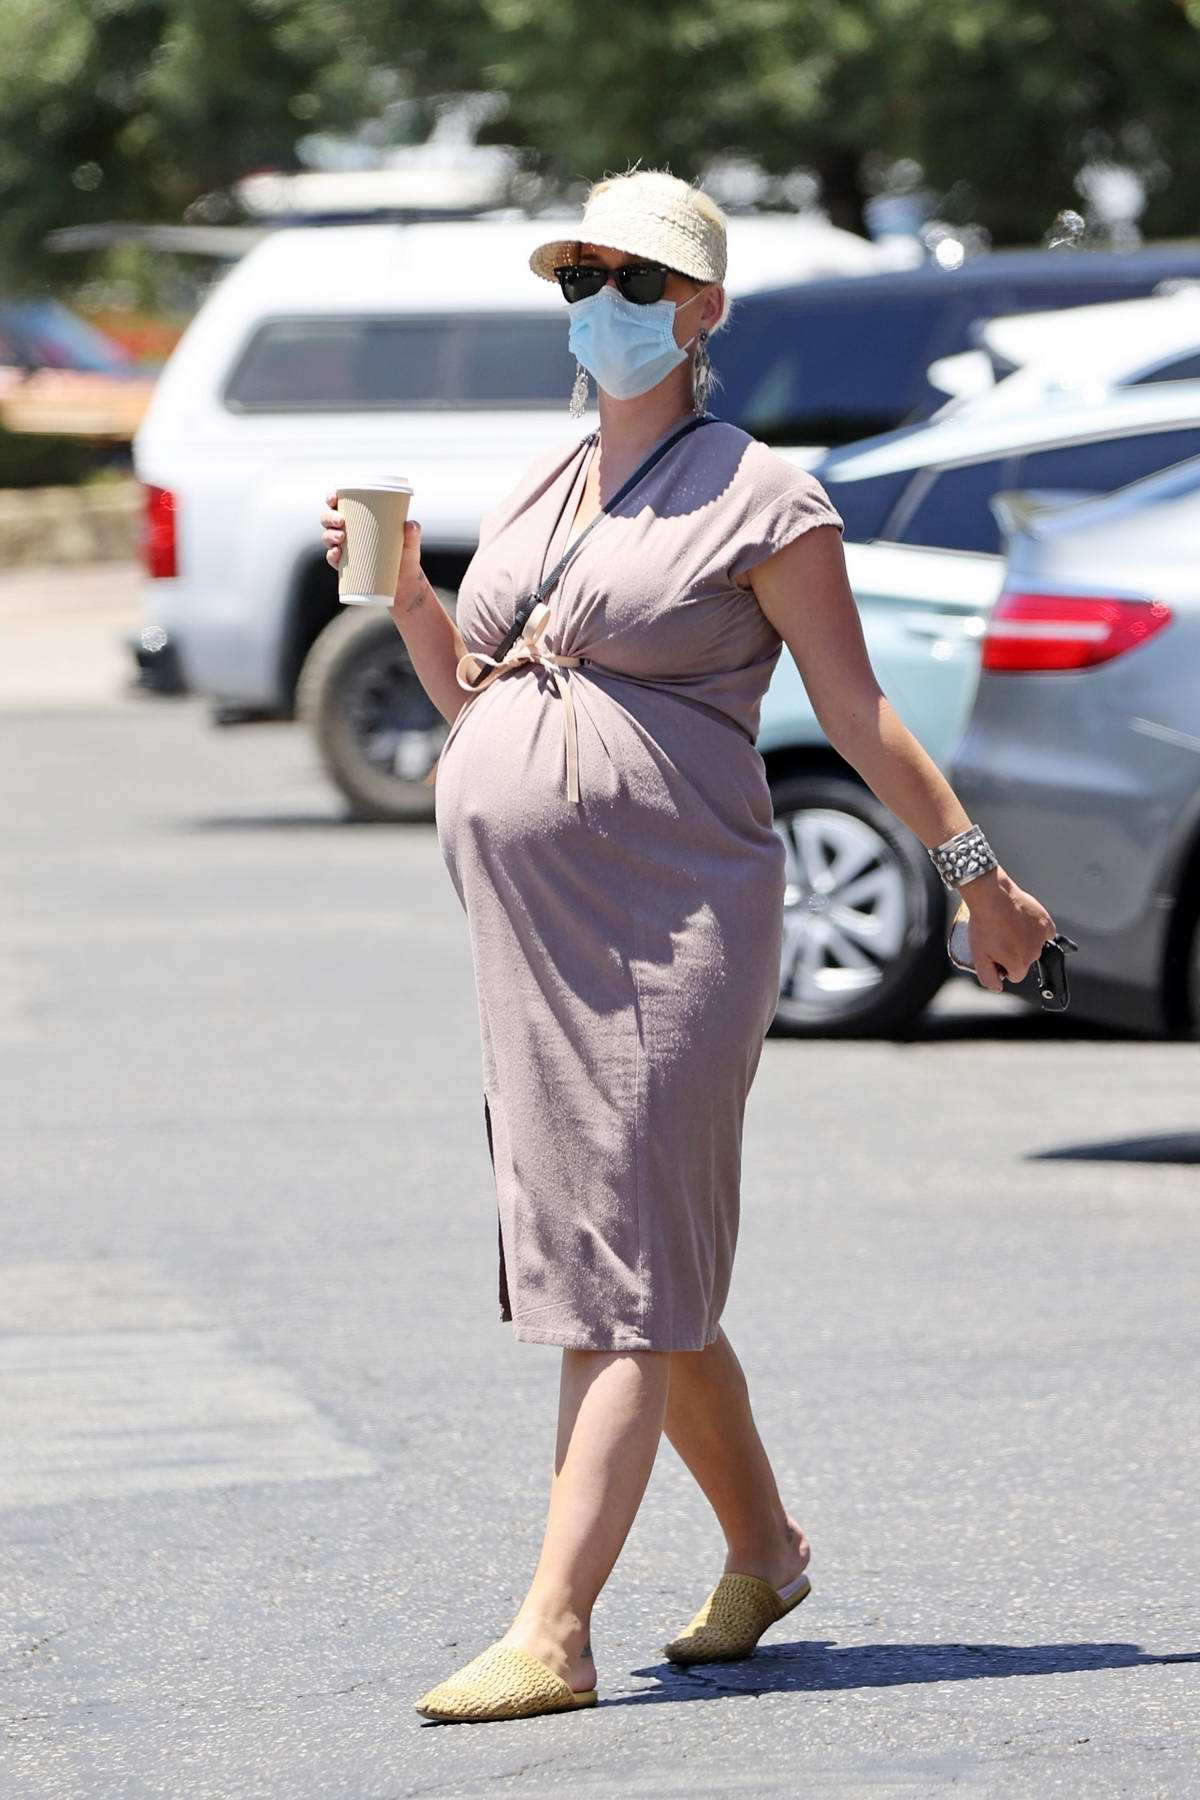 Katy Perry shows her huge baby bump as she picks up food from a cafe in Santa Barbara, California